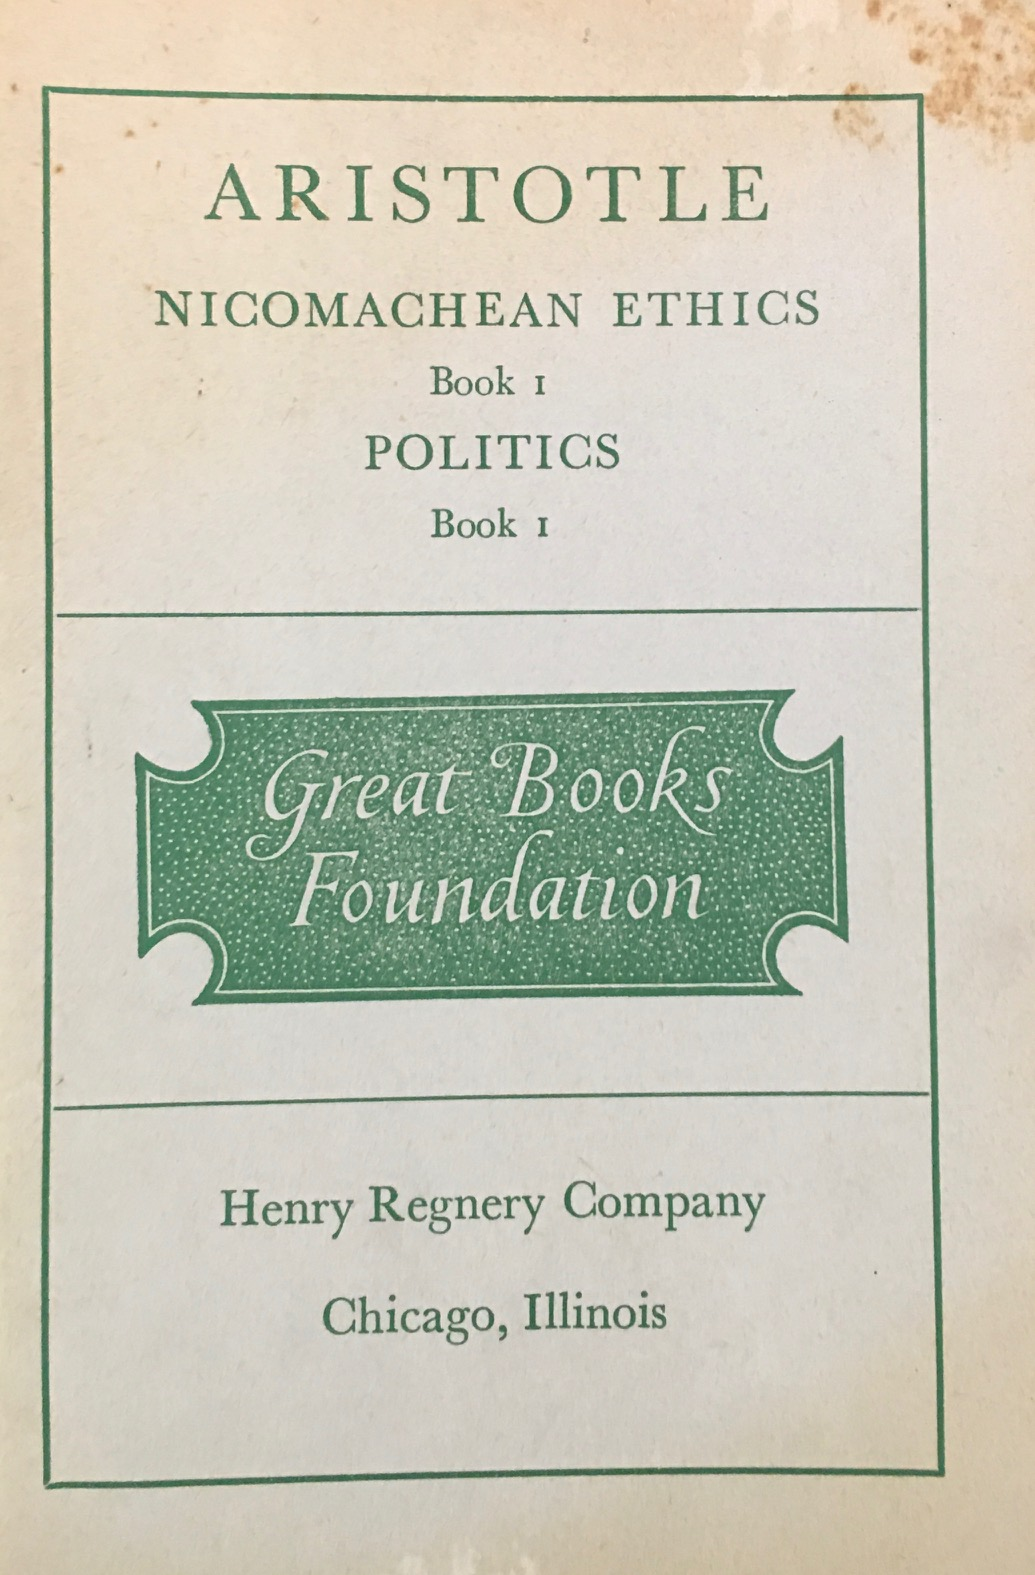 Image for Nicomachean Ethics, Book 1 / Politics, Book 1 (Great Books Foundation)